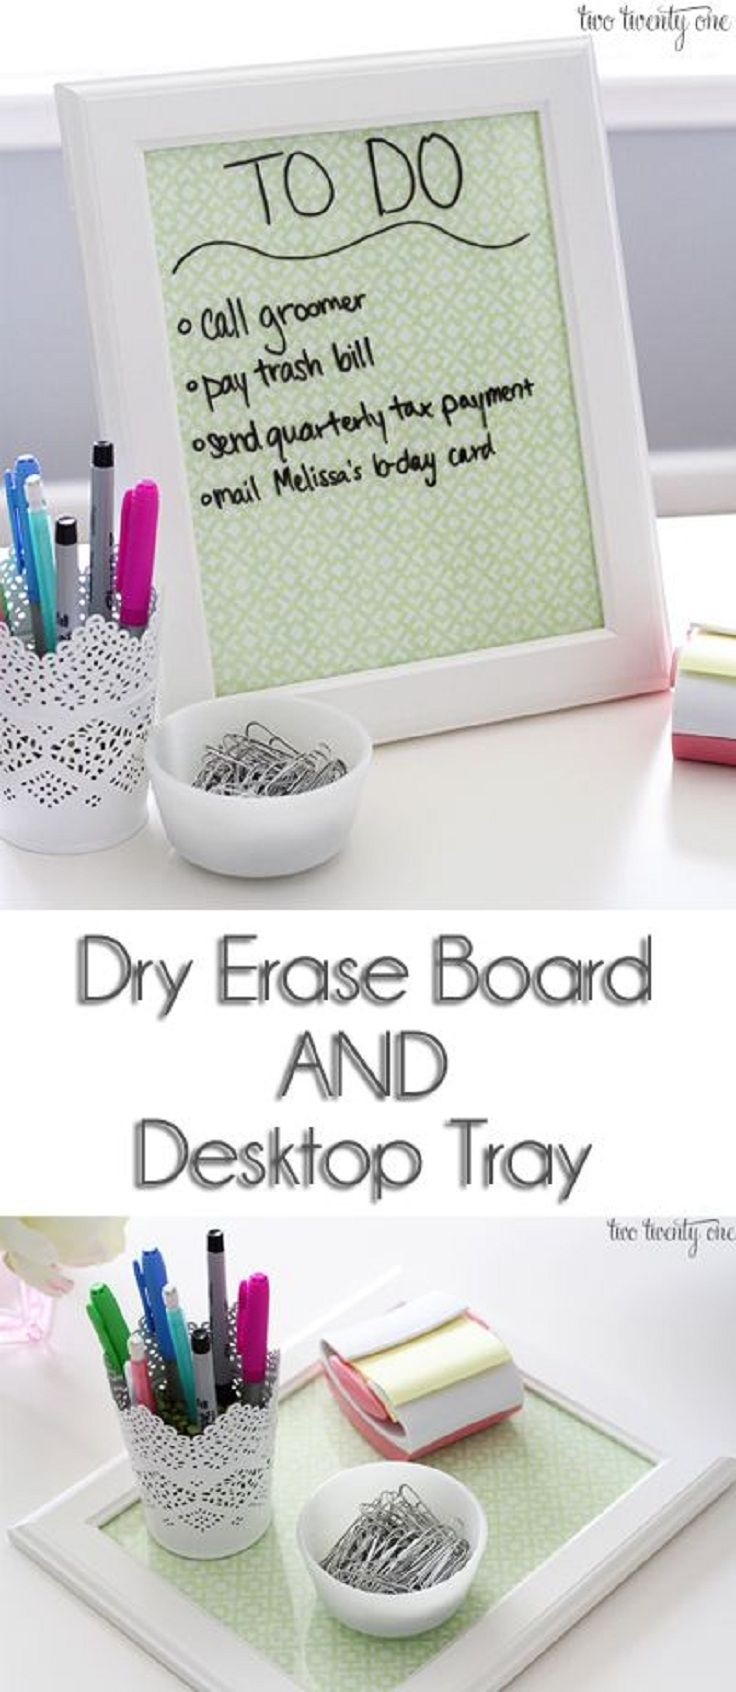 Top 10 DIY Office Organization Tutorials - dry erase board and desktop tray @Jess Liu Landrum I will need one of these!